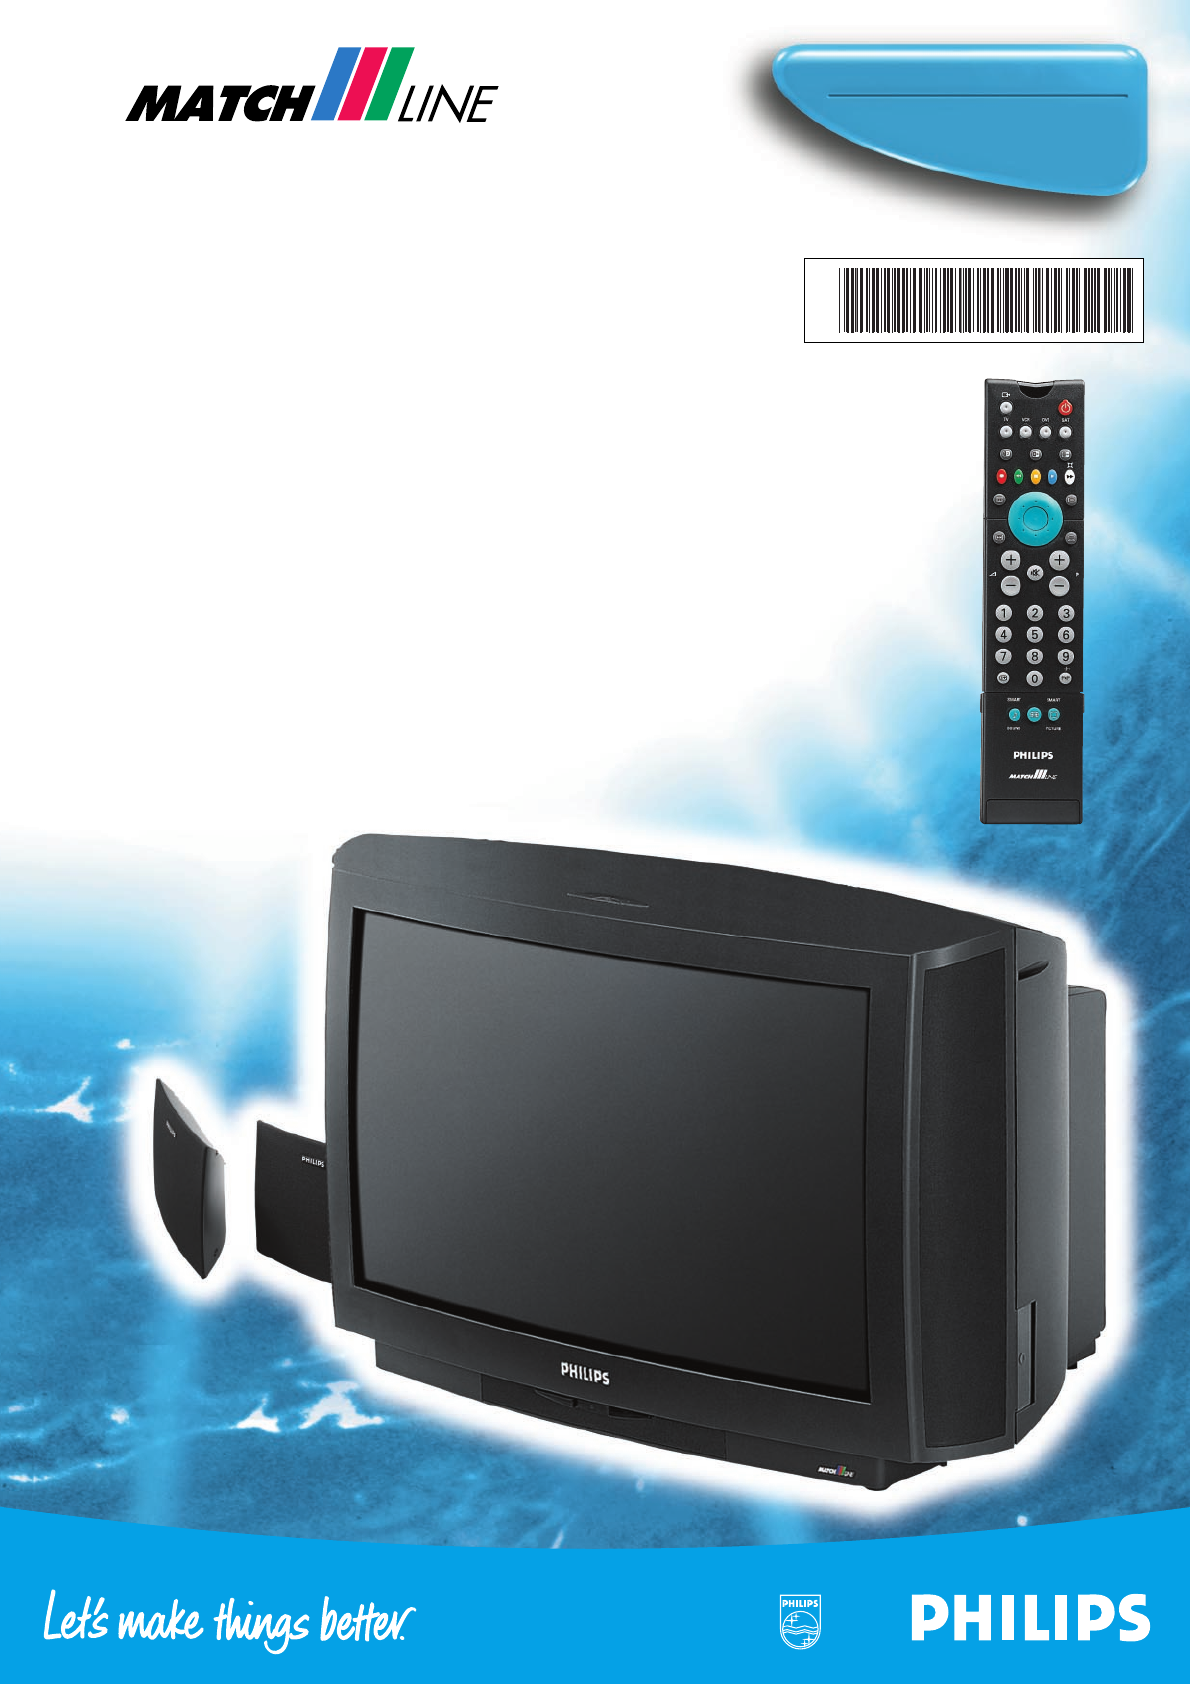 philips satellite tv system 28pw9513 32 user guide manualsonline com rh tv manualsonline com Philips User Guides Speaker Bt7900 Philips User Guides Speaker Bt7900